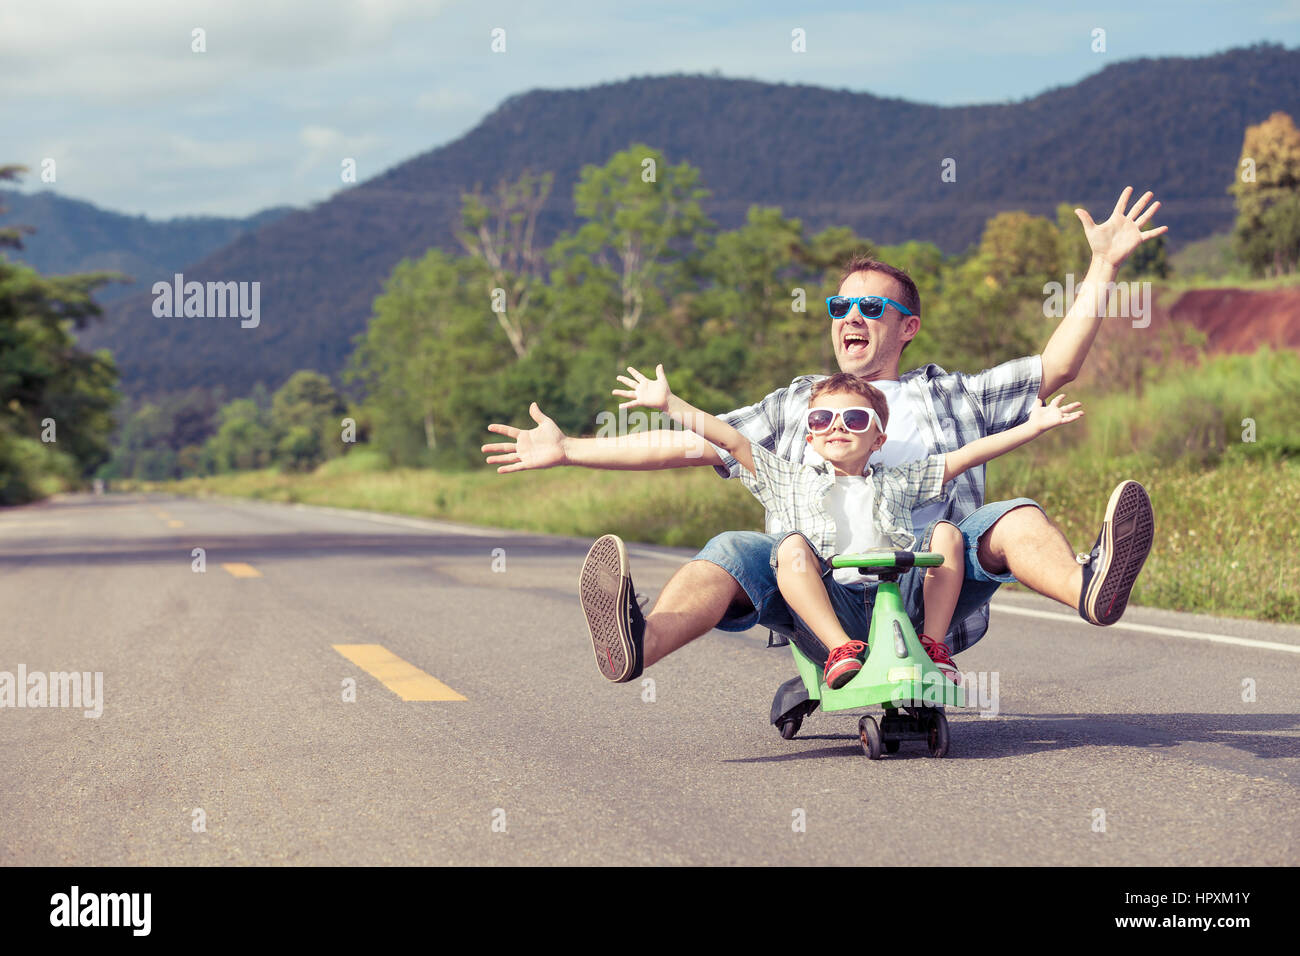 Father and son playing  on the road at the day time.  Concept of friendly family. - Stock Image